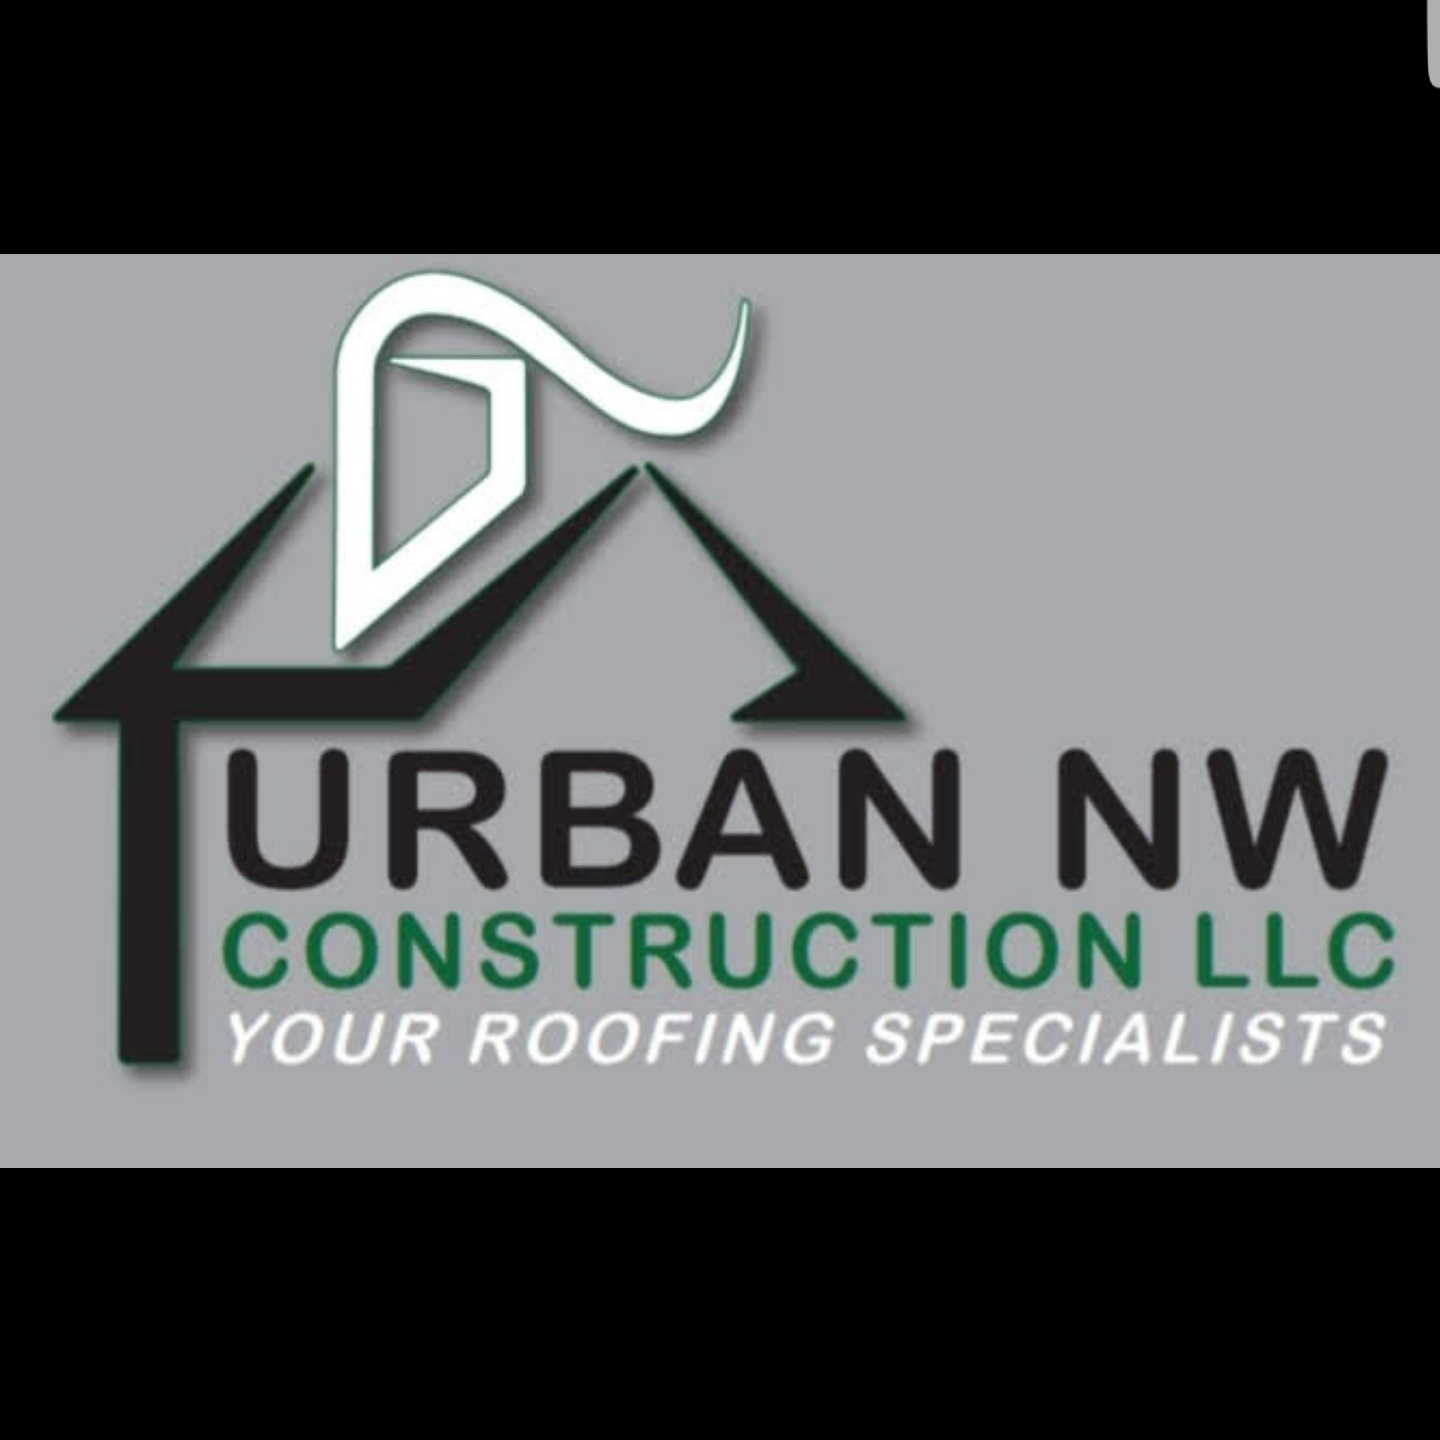 Urban NW Construction LLC